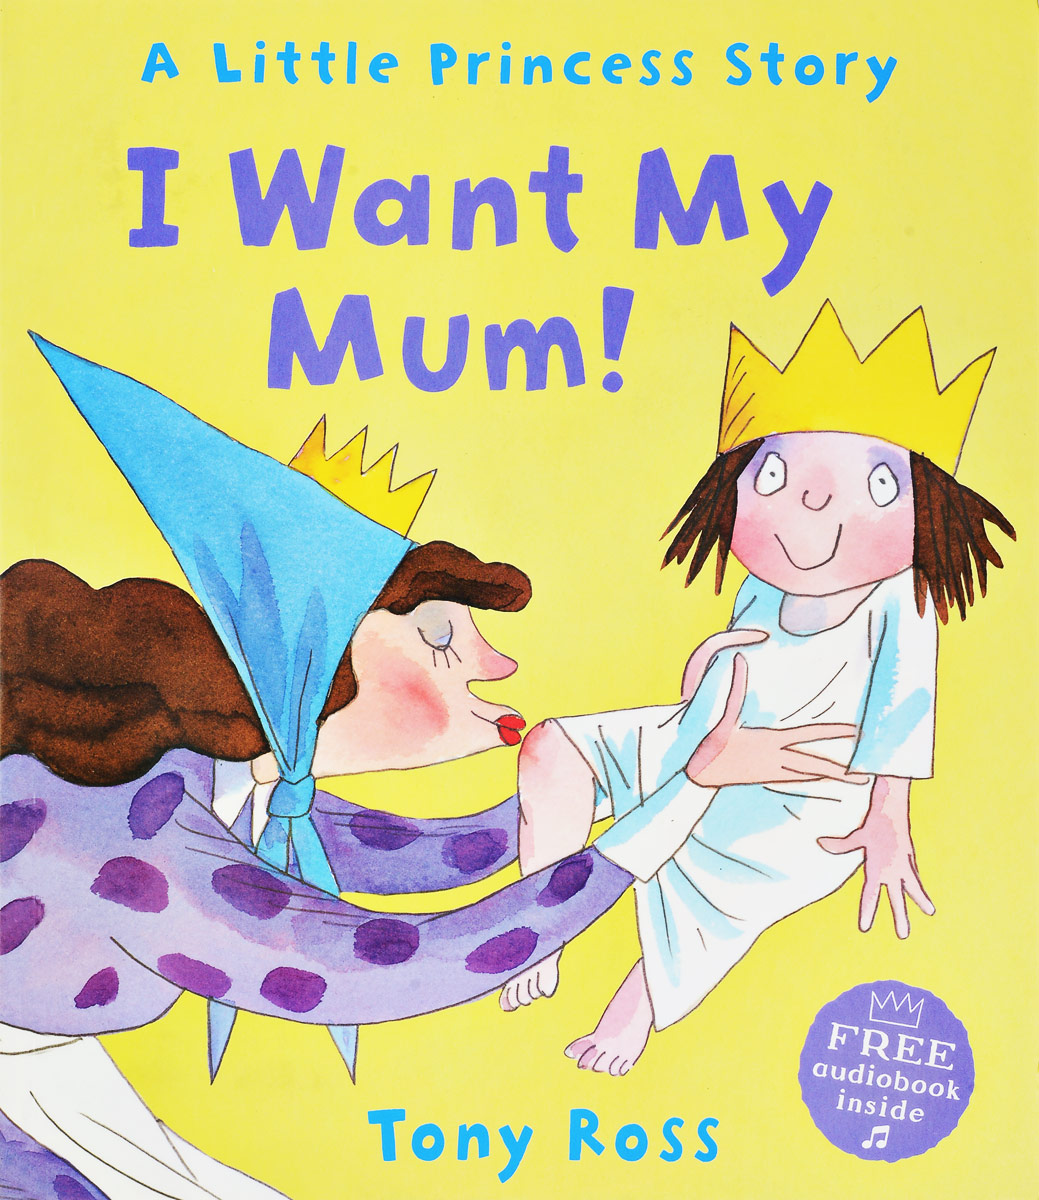 I WANT MY MUM!